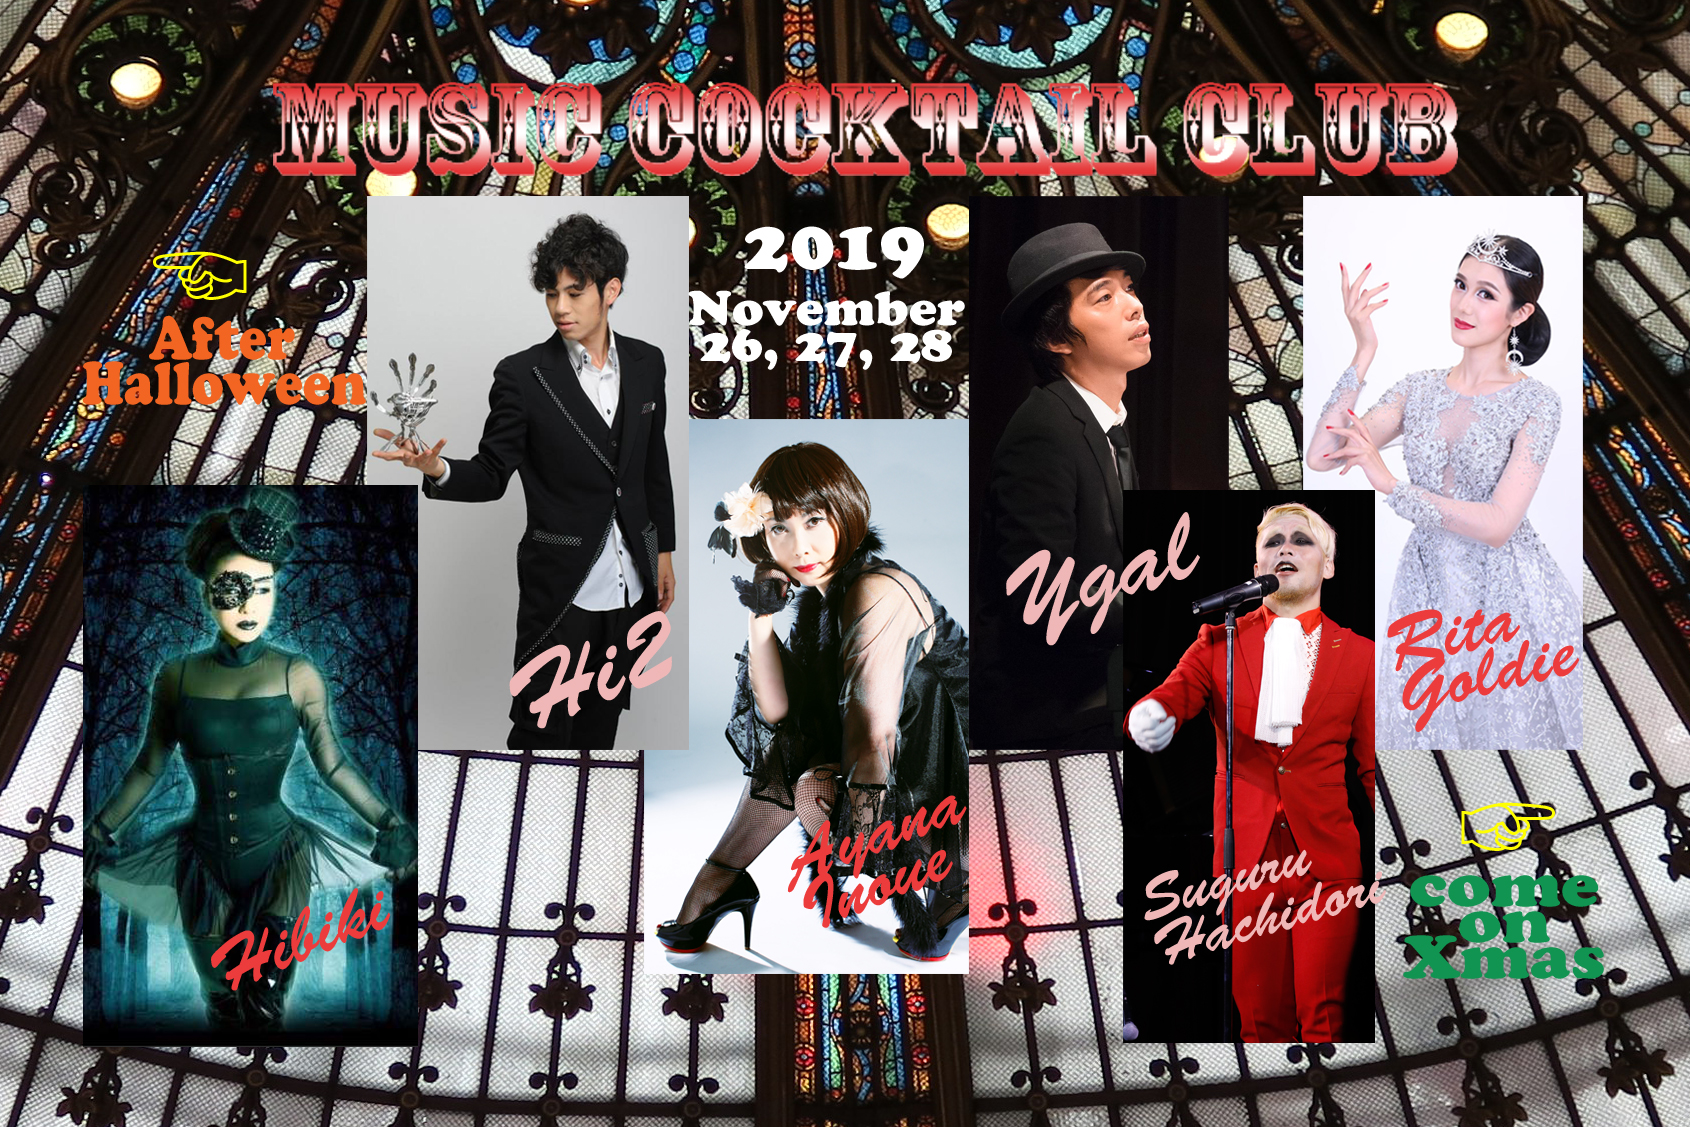 MUSIC COCKTAIL CLUB レシピ・after Halloween⇄come on Xmas